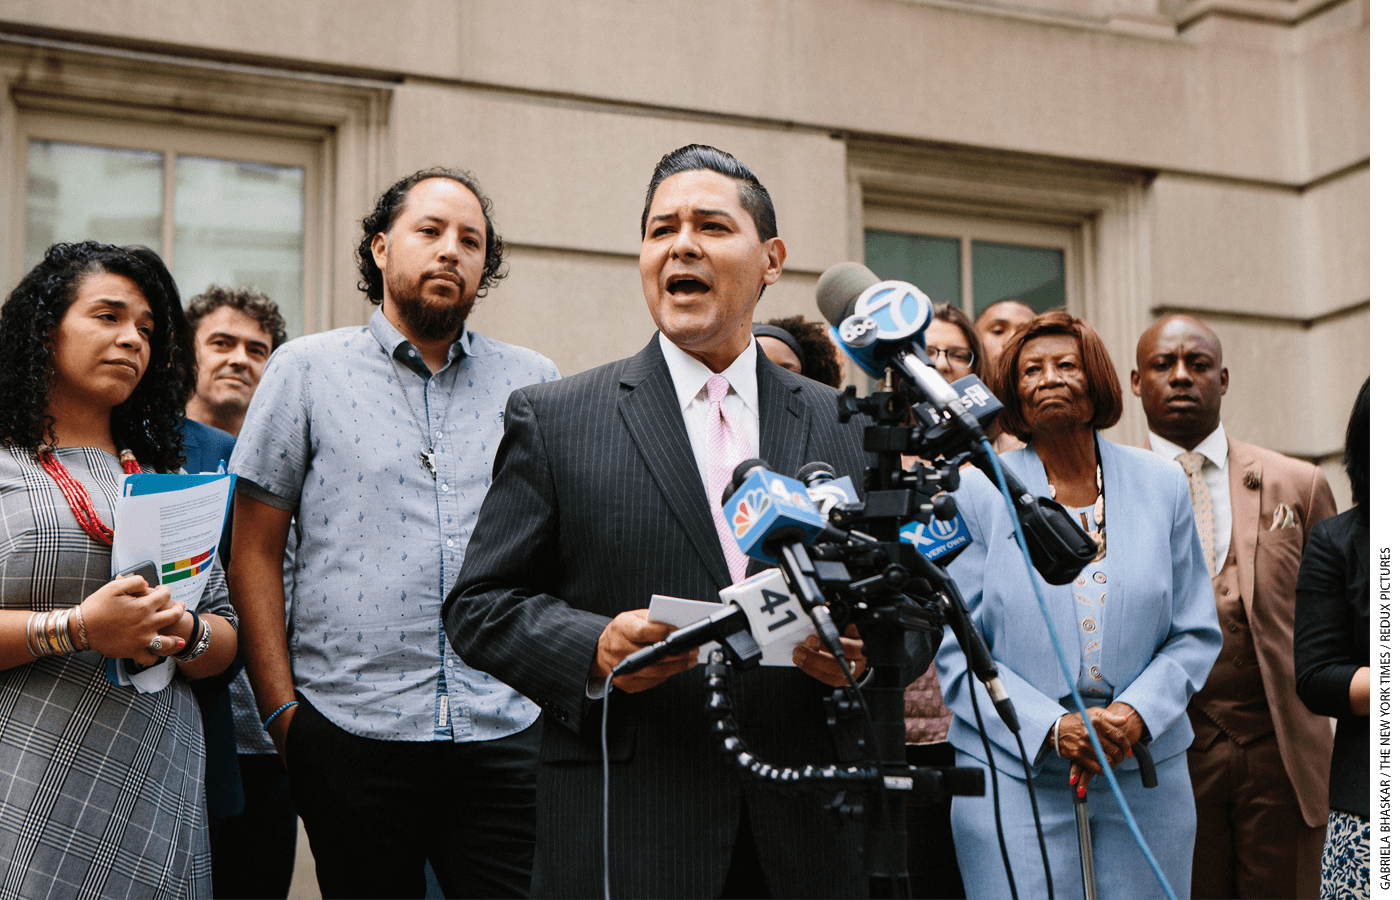 Richard Carranza, schools chancellor for New York, speaks during a news conference in front of the city's Department of Education.